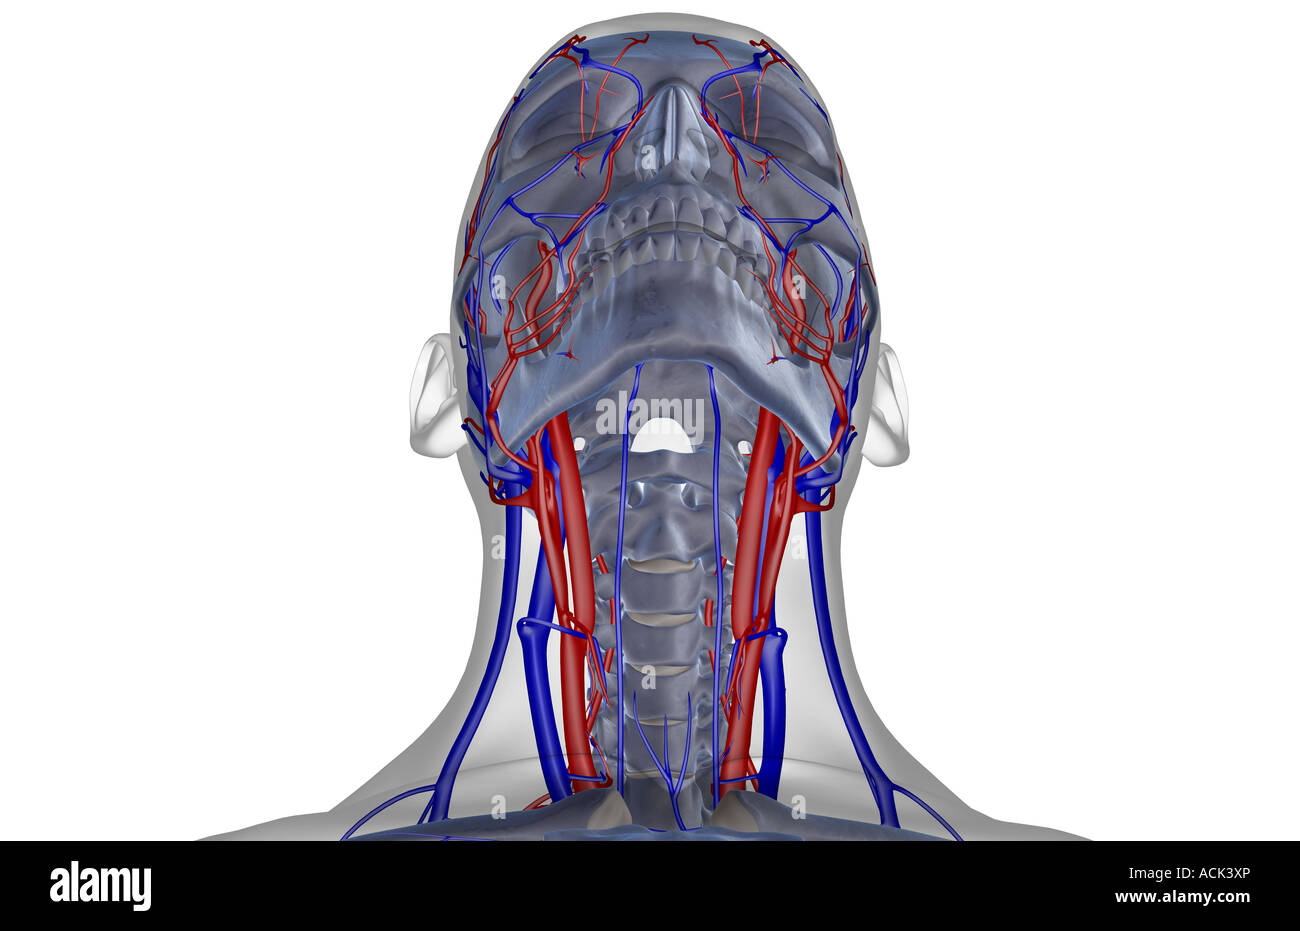 Anterior Jugular Vein Stock Photos & Anterior Jugular Vein Stock ...